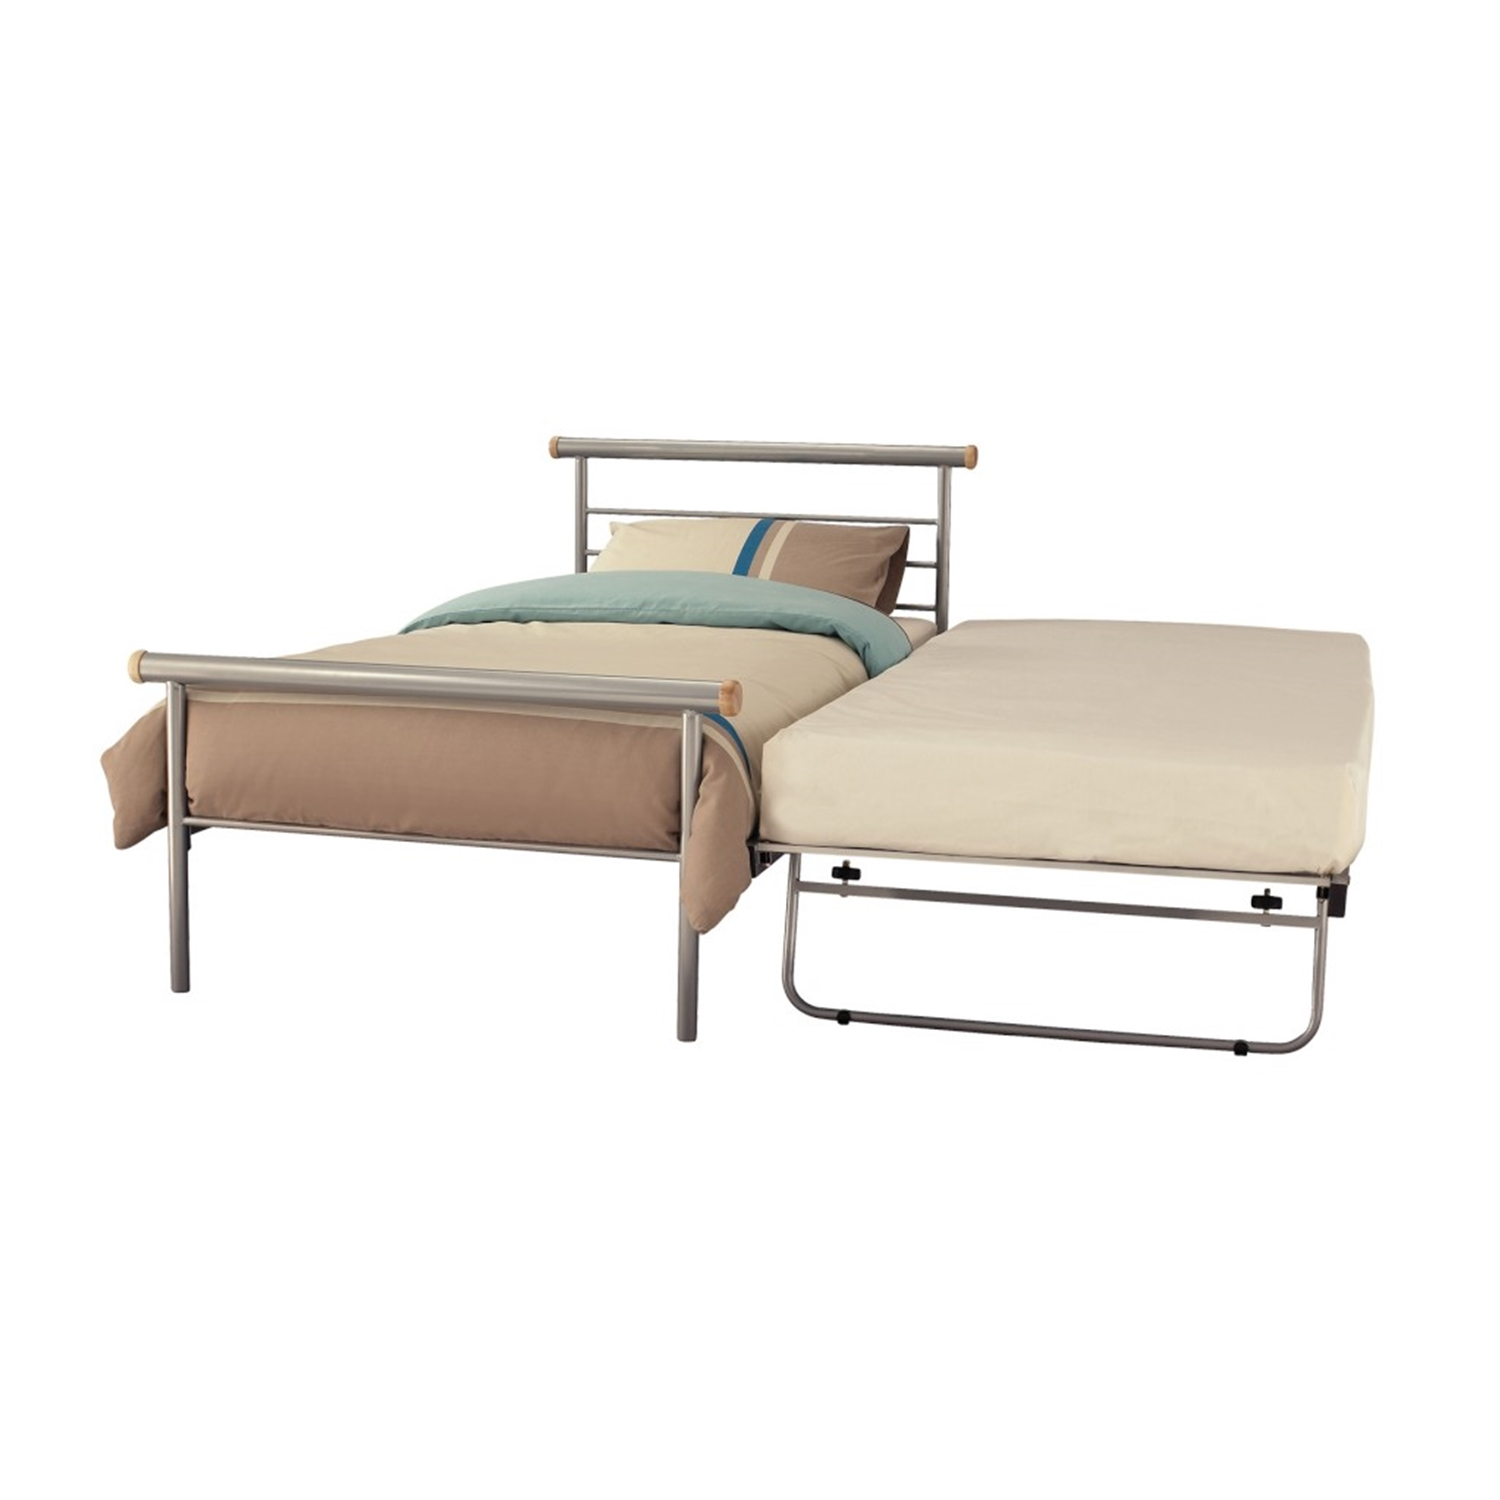 Image of Casa Celine Single Guest Bed